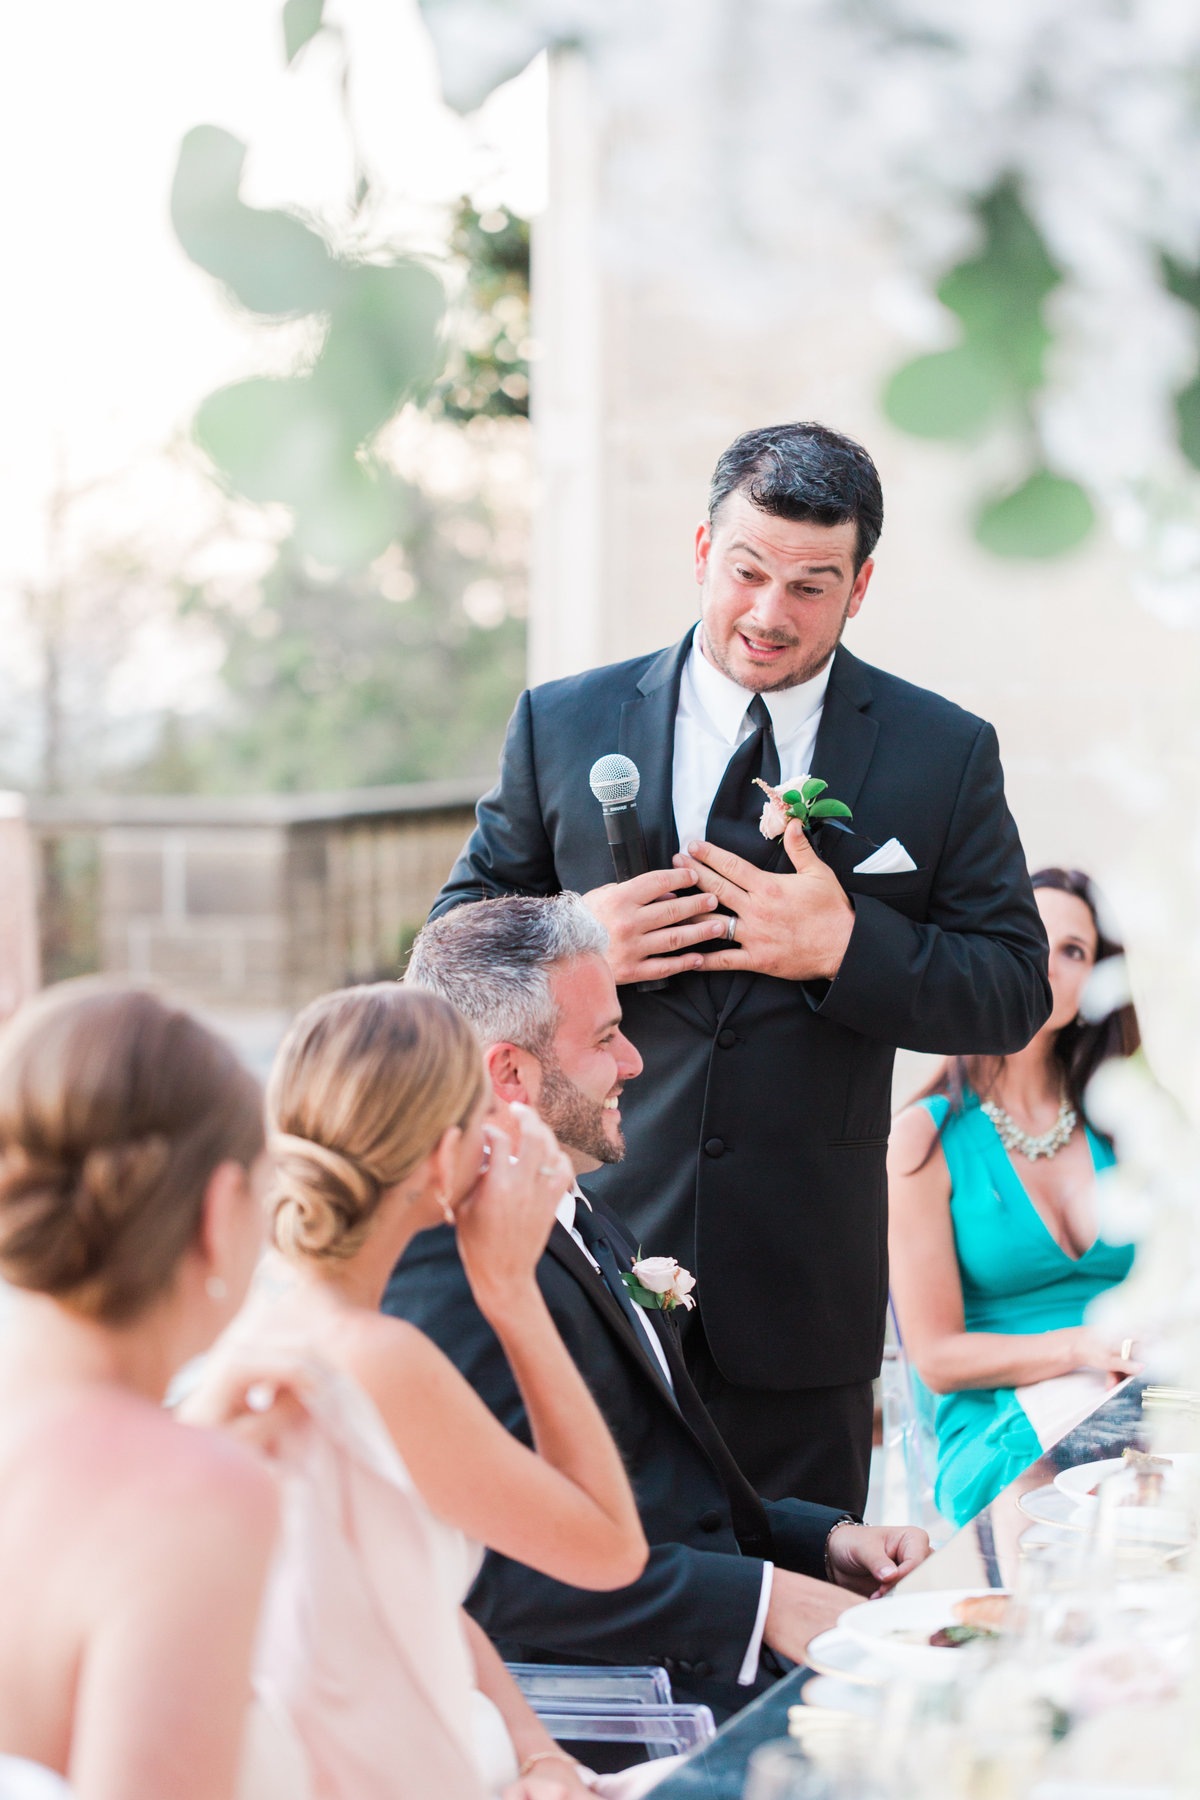 Greystone_Mansion_Intimate_Black_Tie_Wedding_Valorie_Darling_Photography - 183 of 206